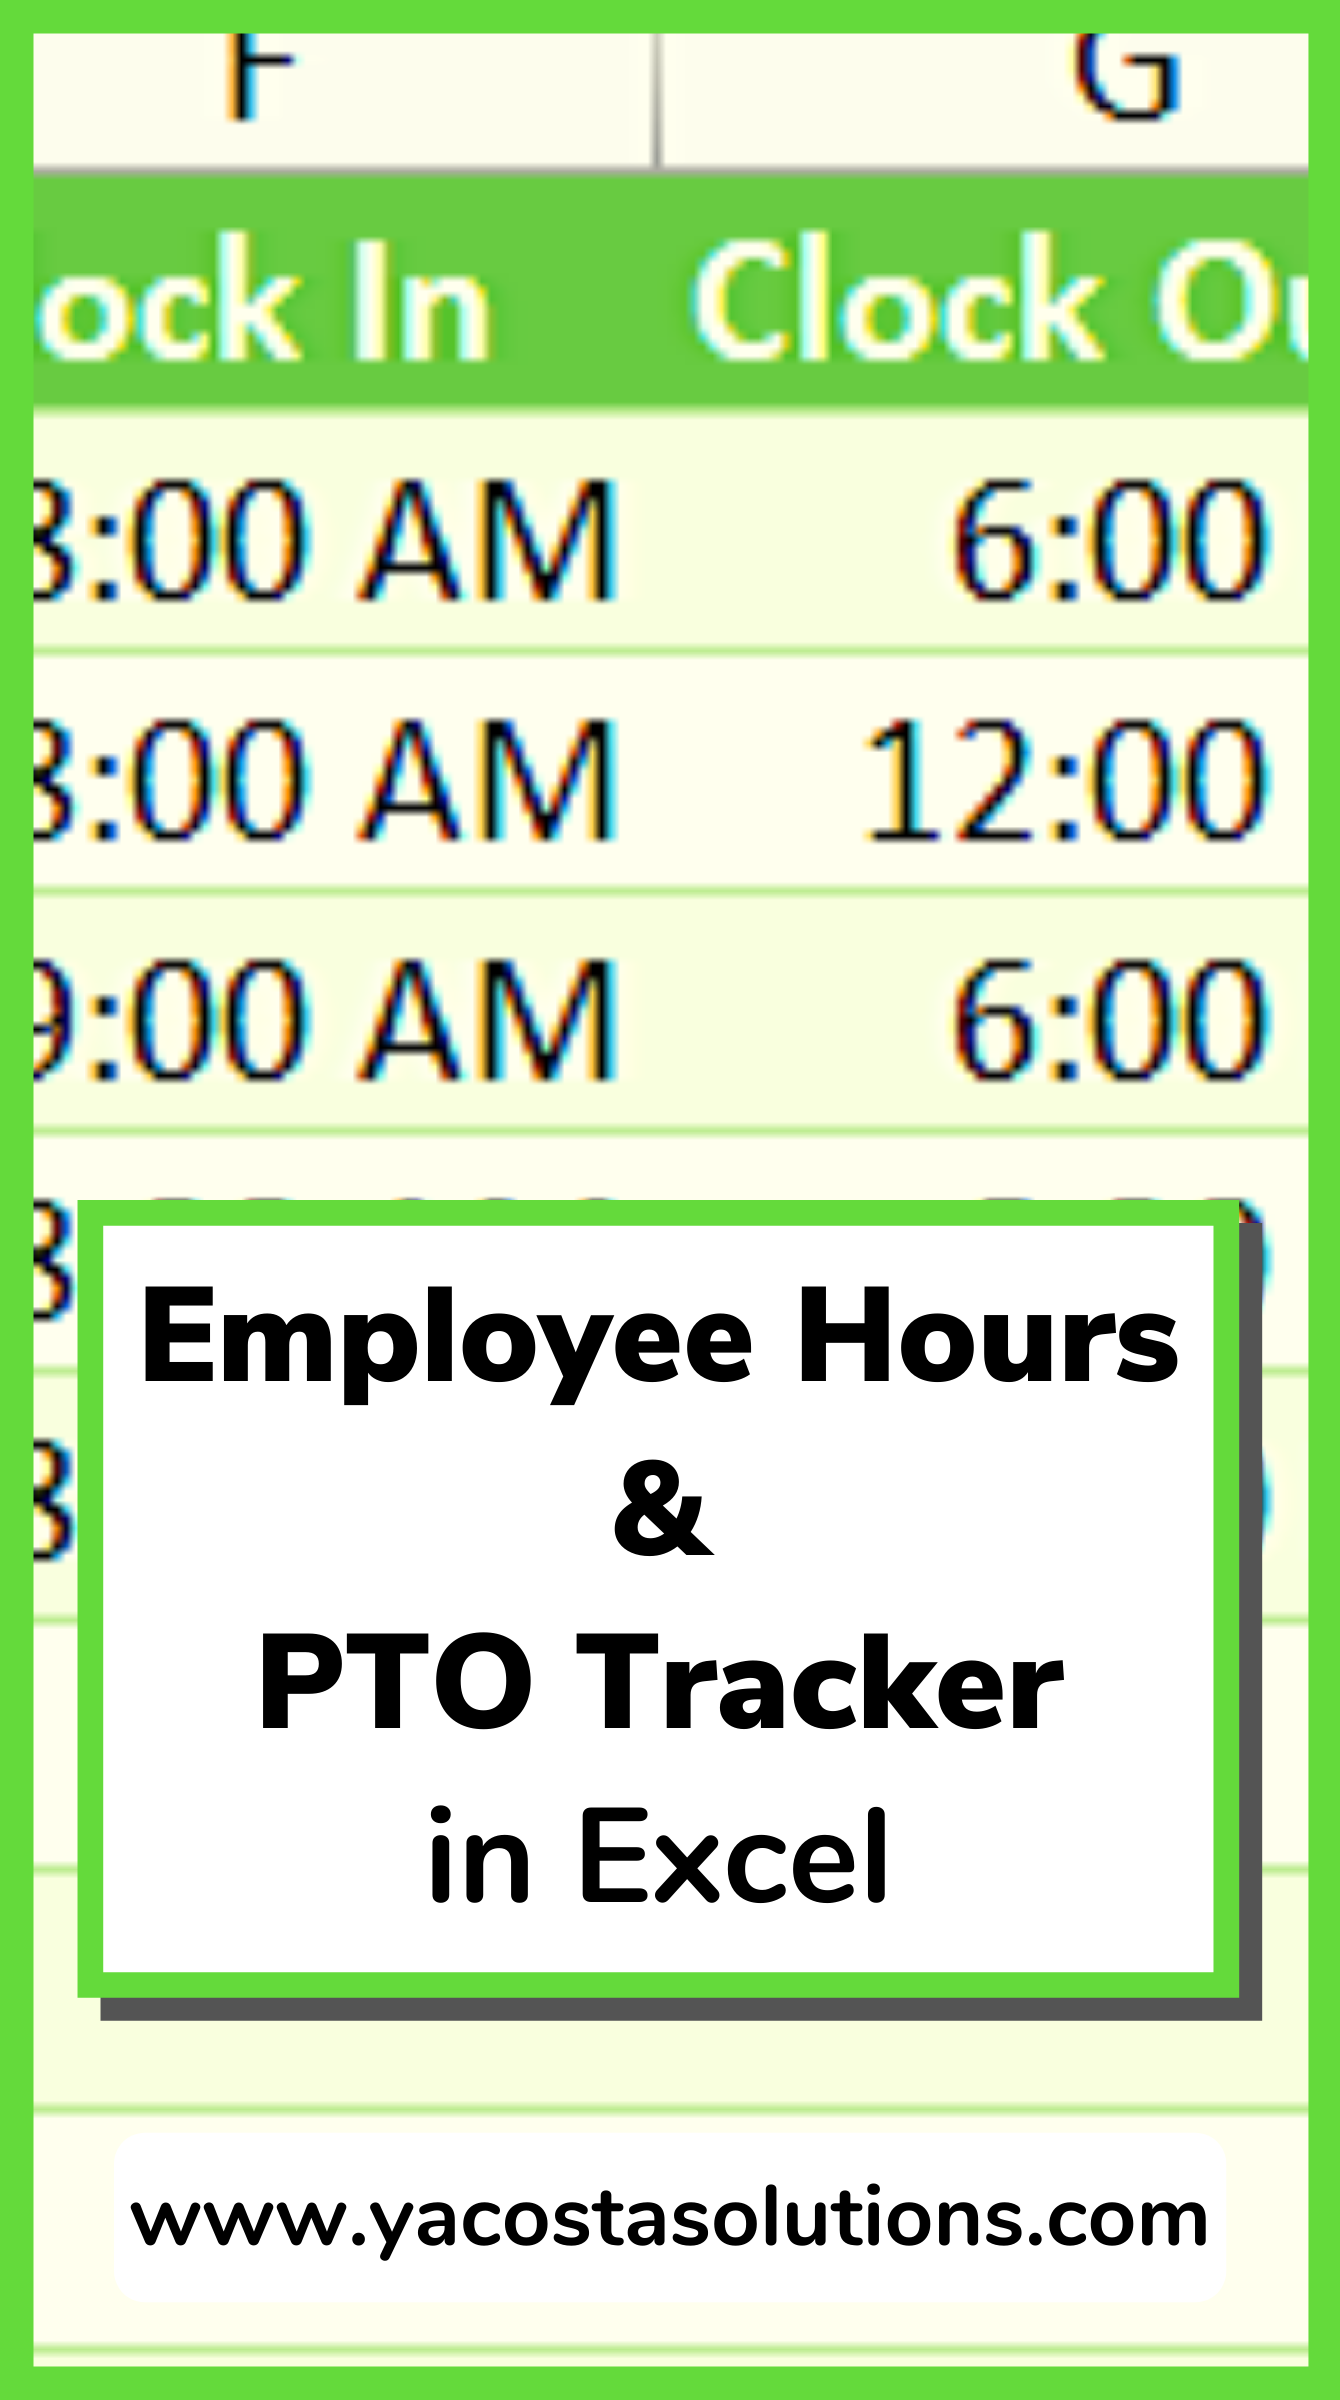 Employee Time Pto Tracker In Excel Excel Tutorials Microsoft Excel Tutorial Excel For Beginners